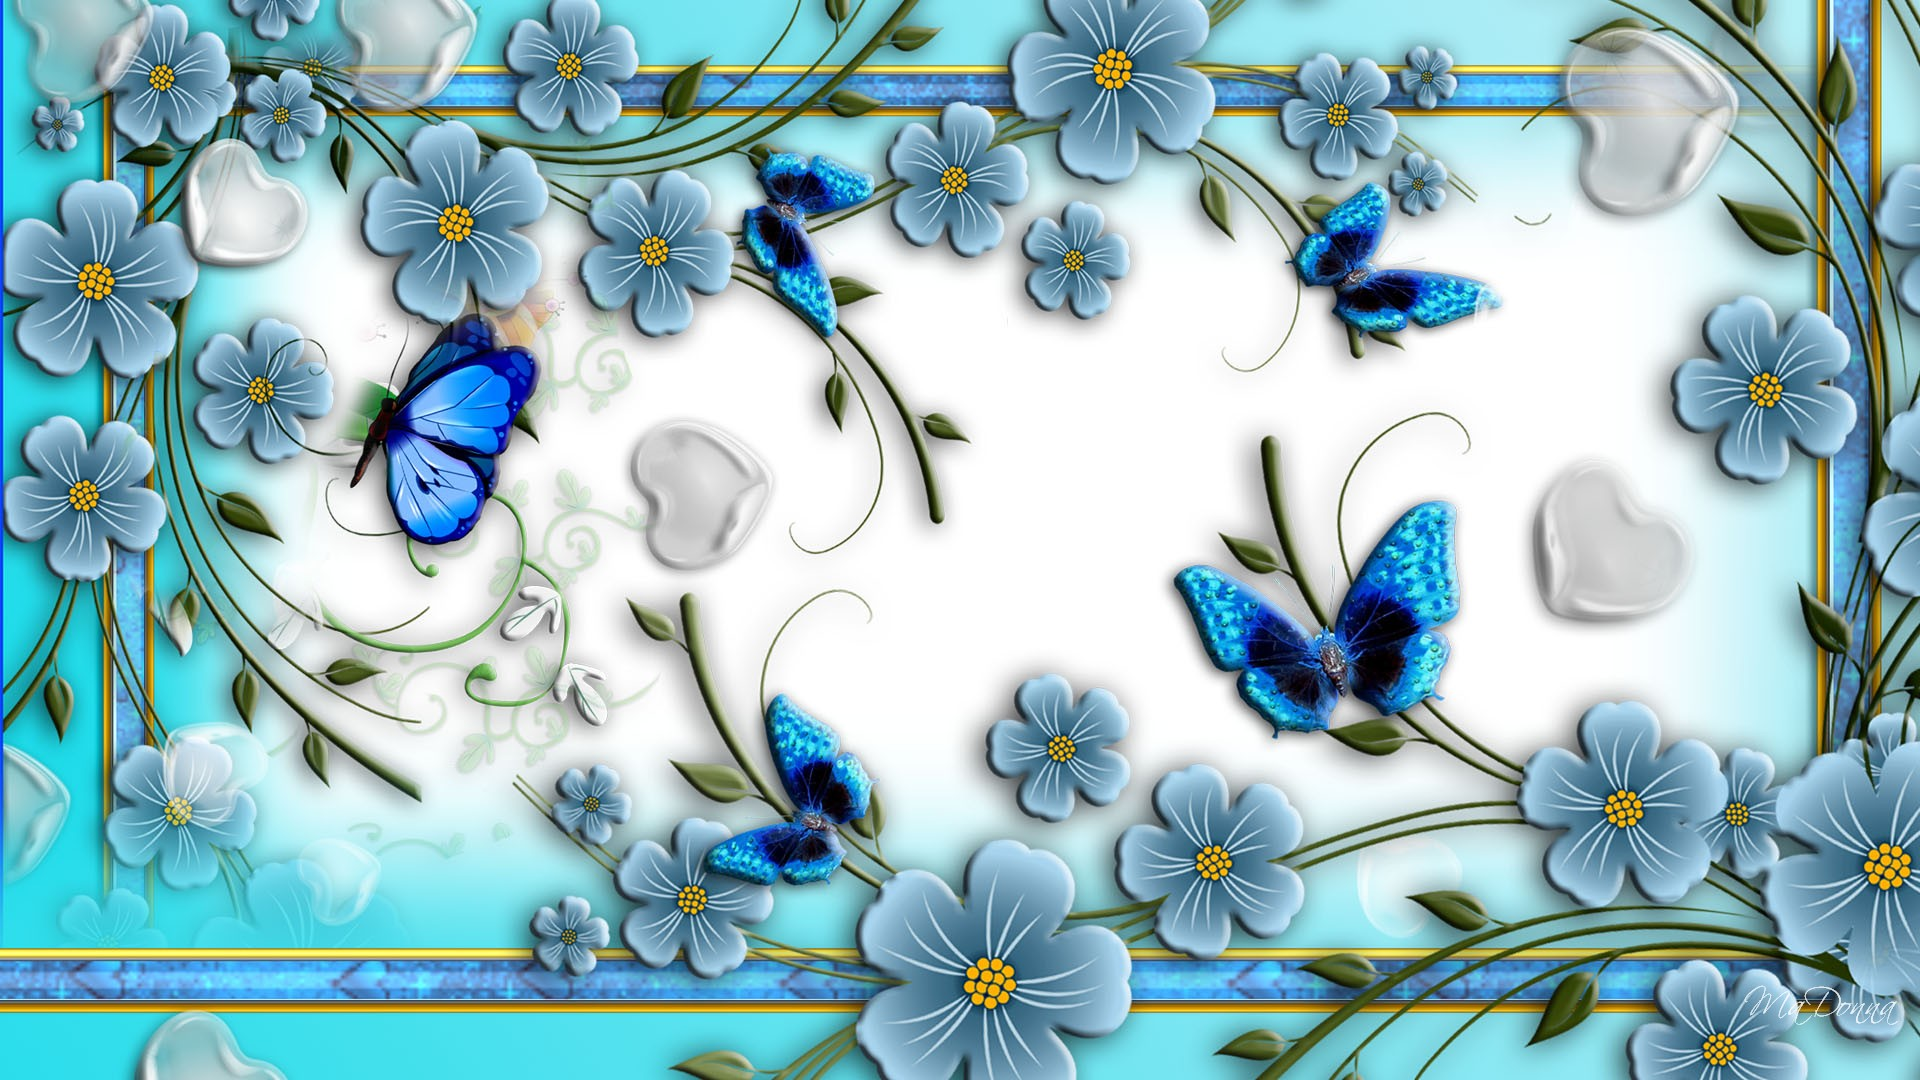 Download Blue Butterflies Abstract Flowers Unique Nature Wallpaper 1920x1080